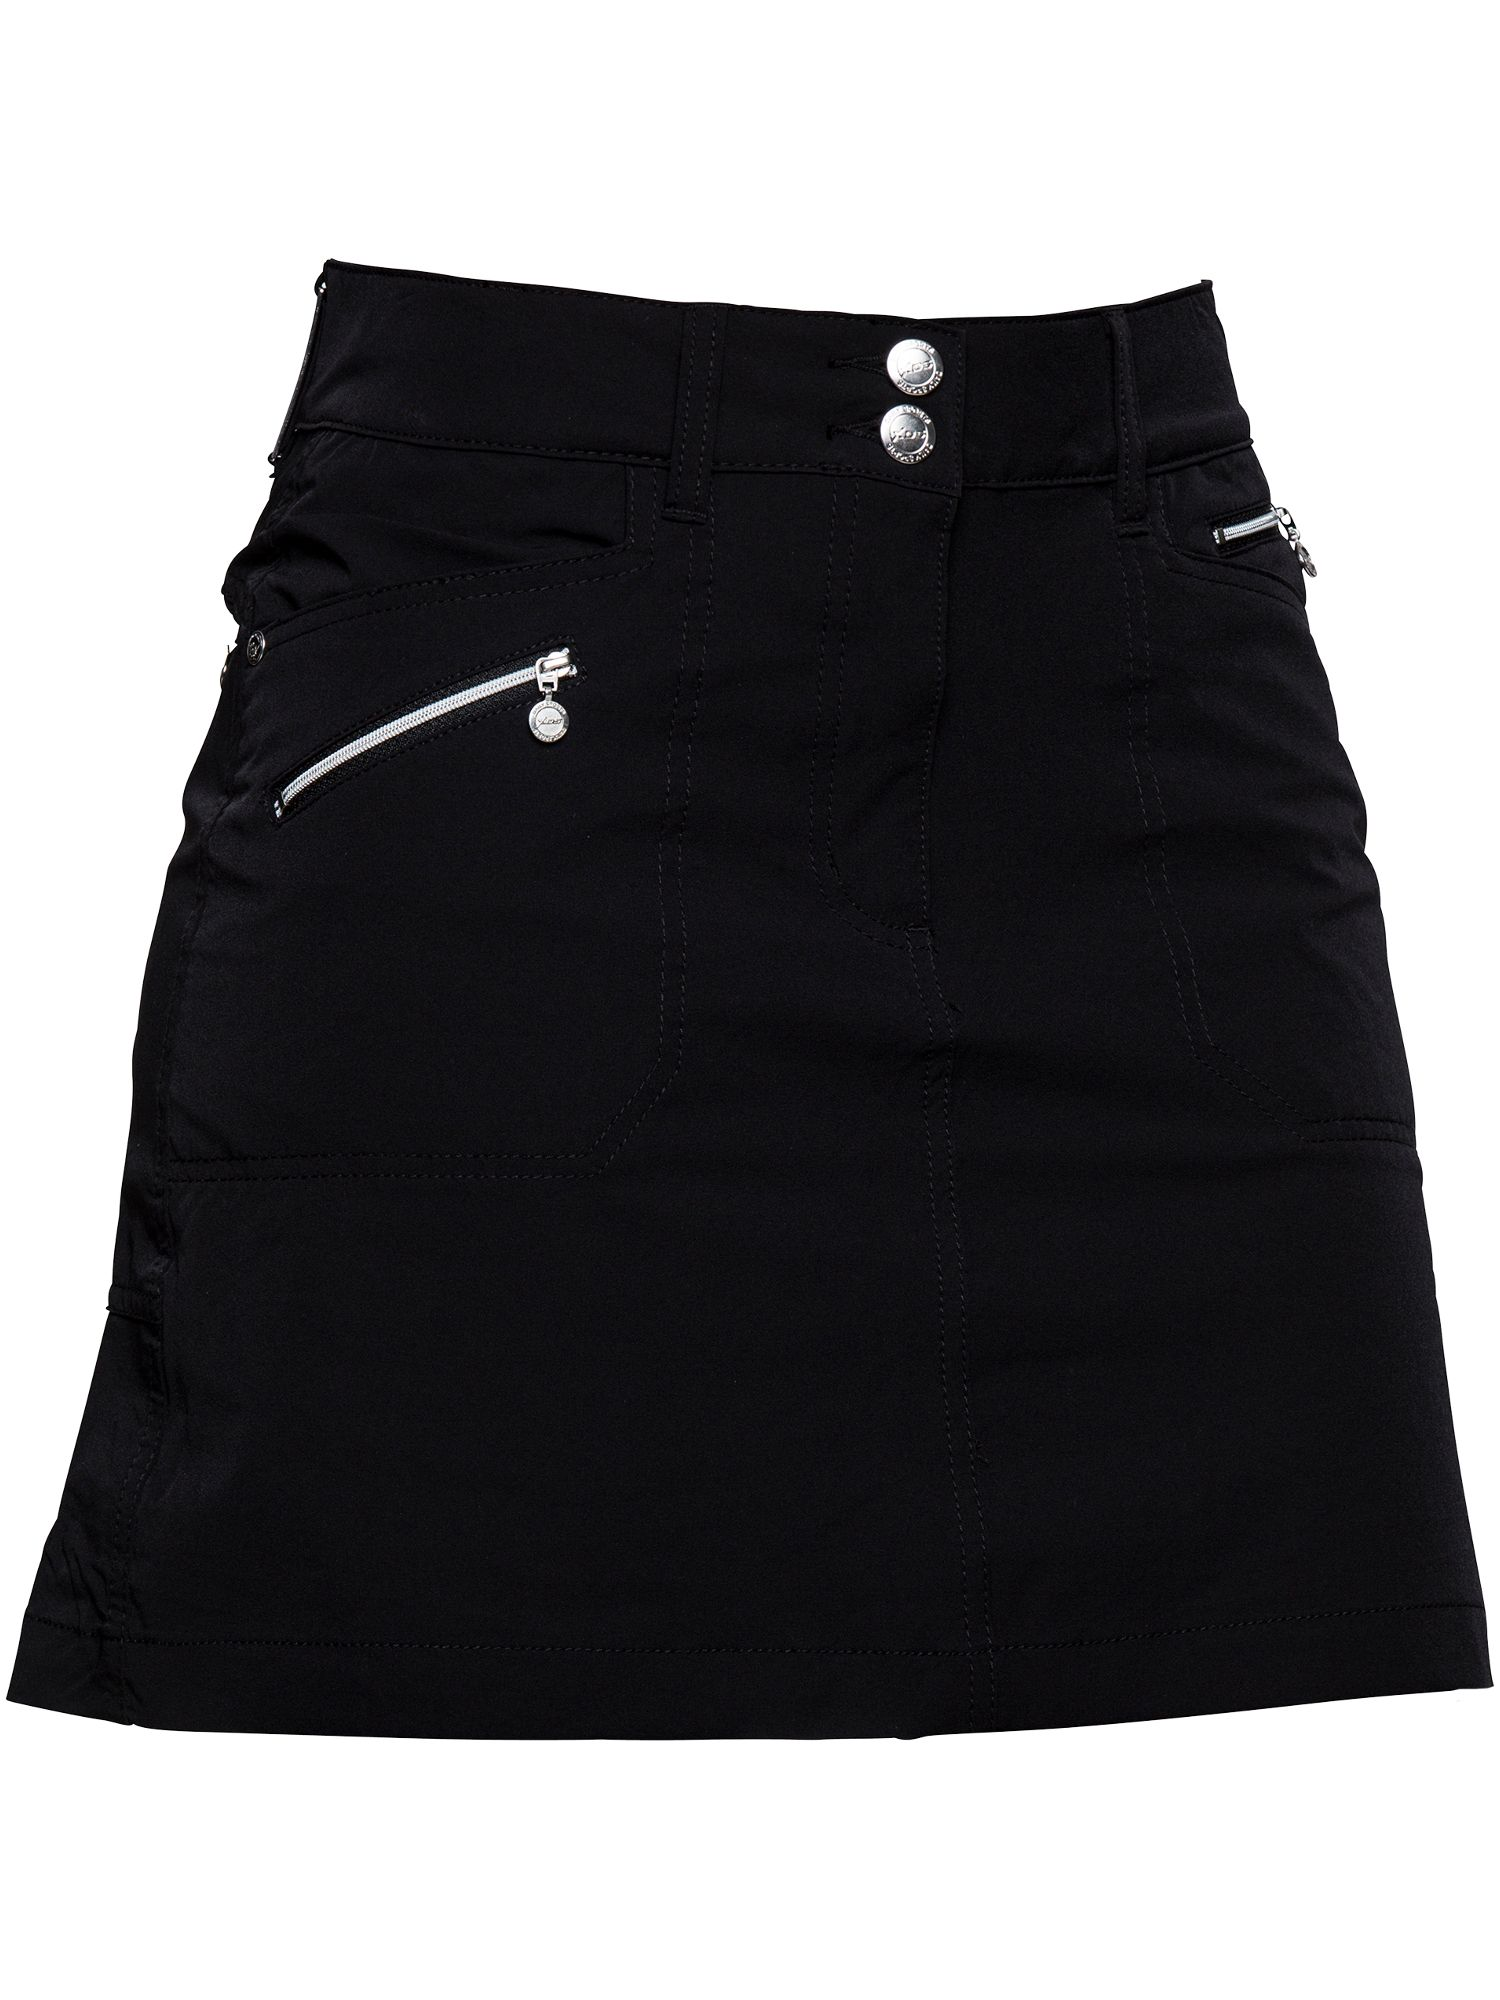 Daily Sports Daily Sports Miracle skort, Black